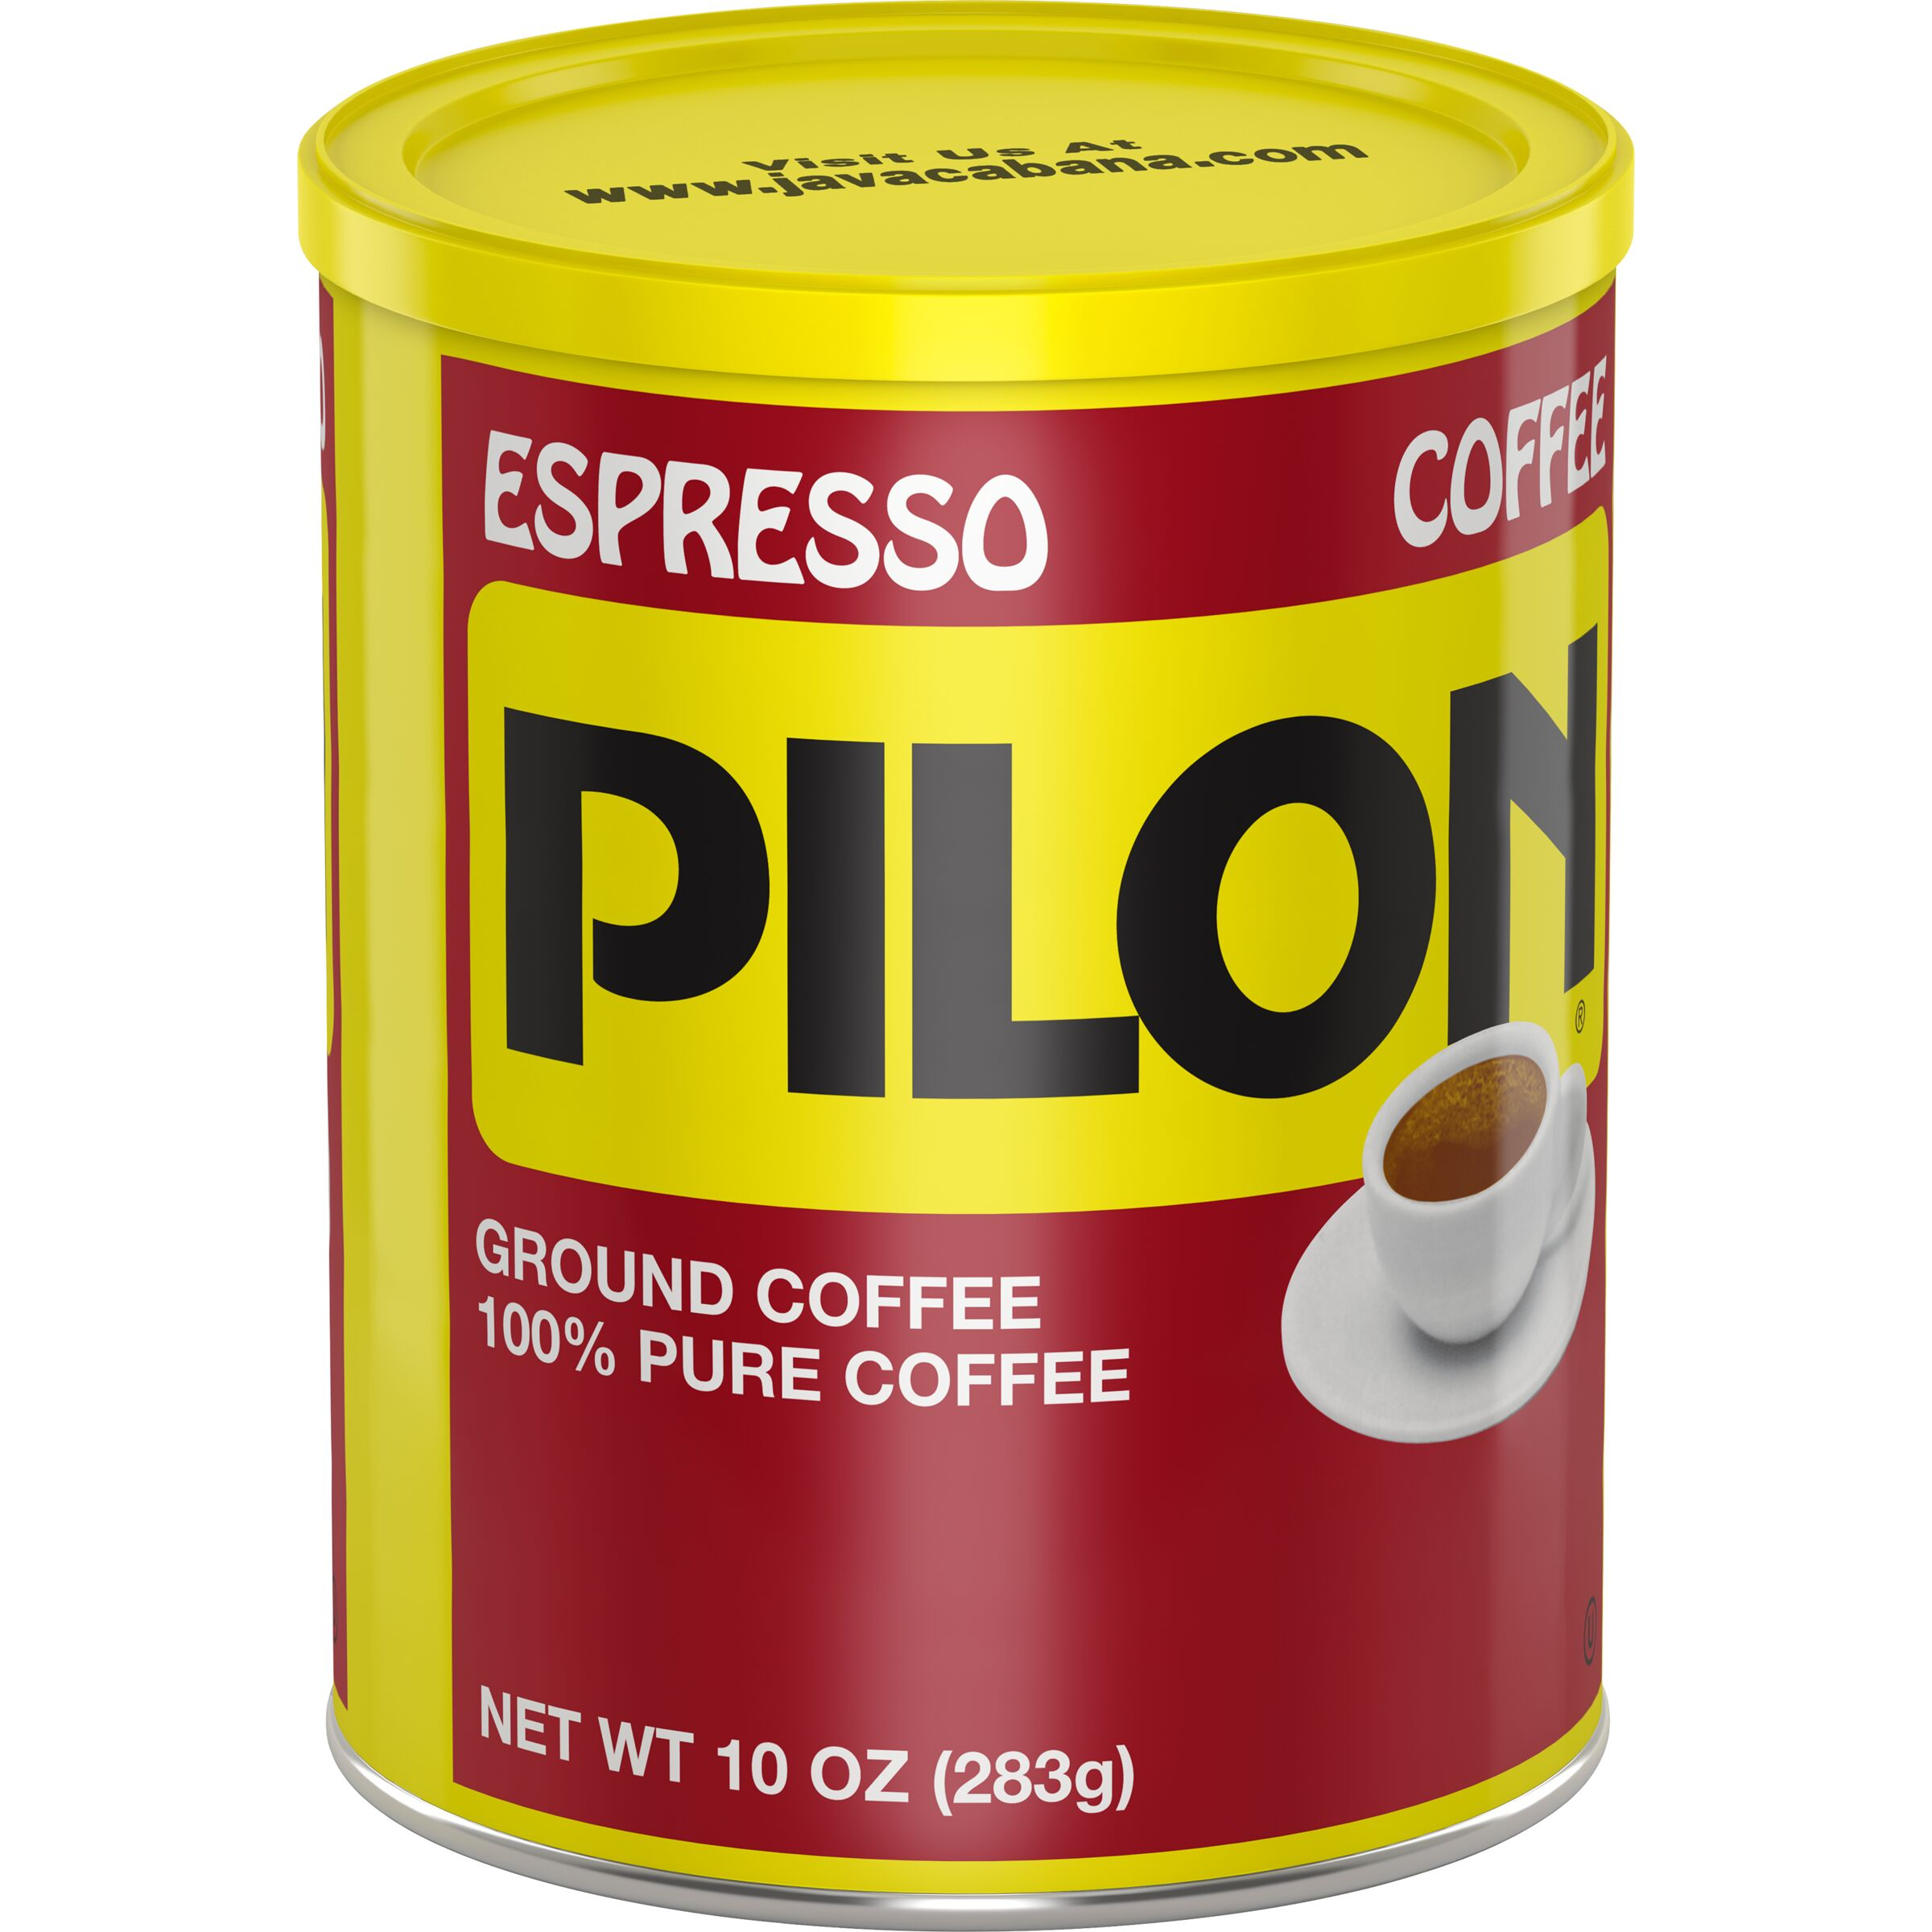 Cafe Pilon  Espresso Coffee